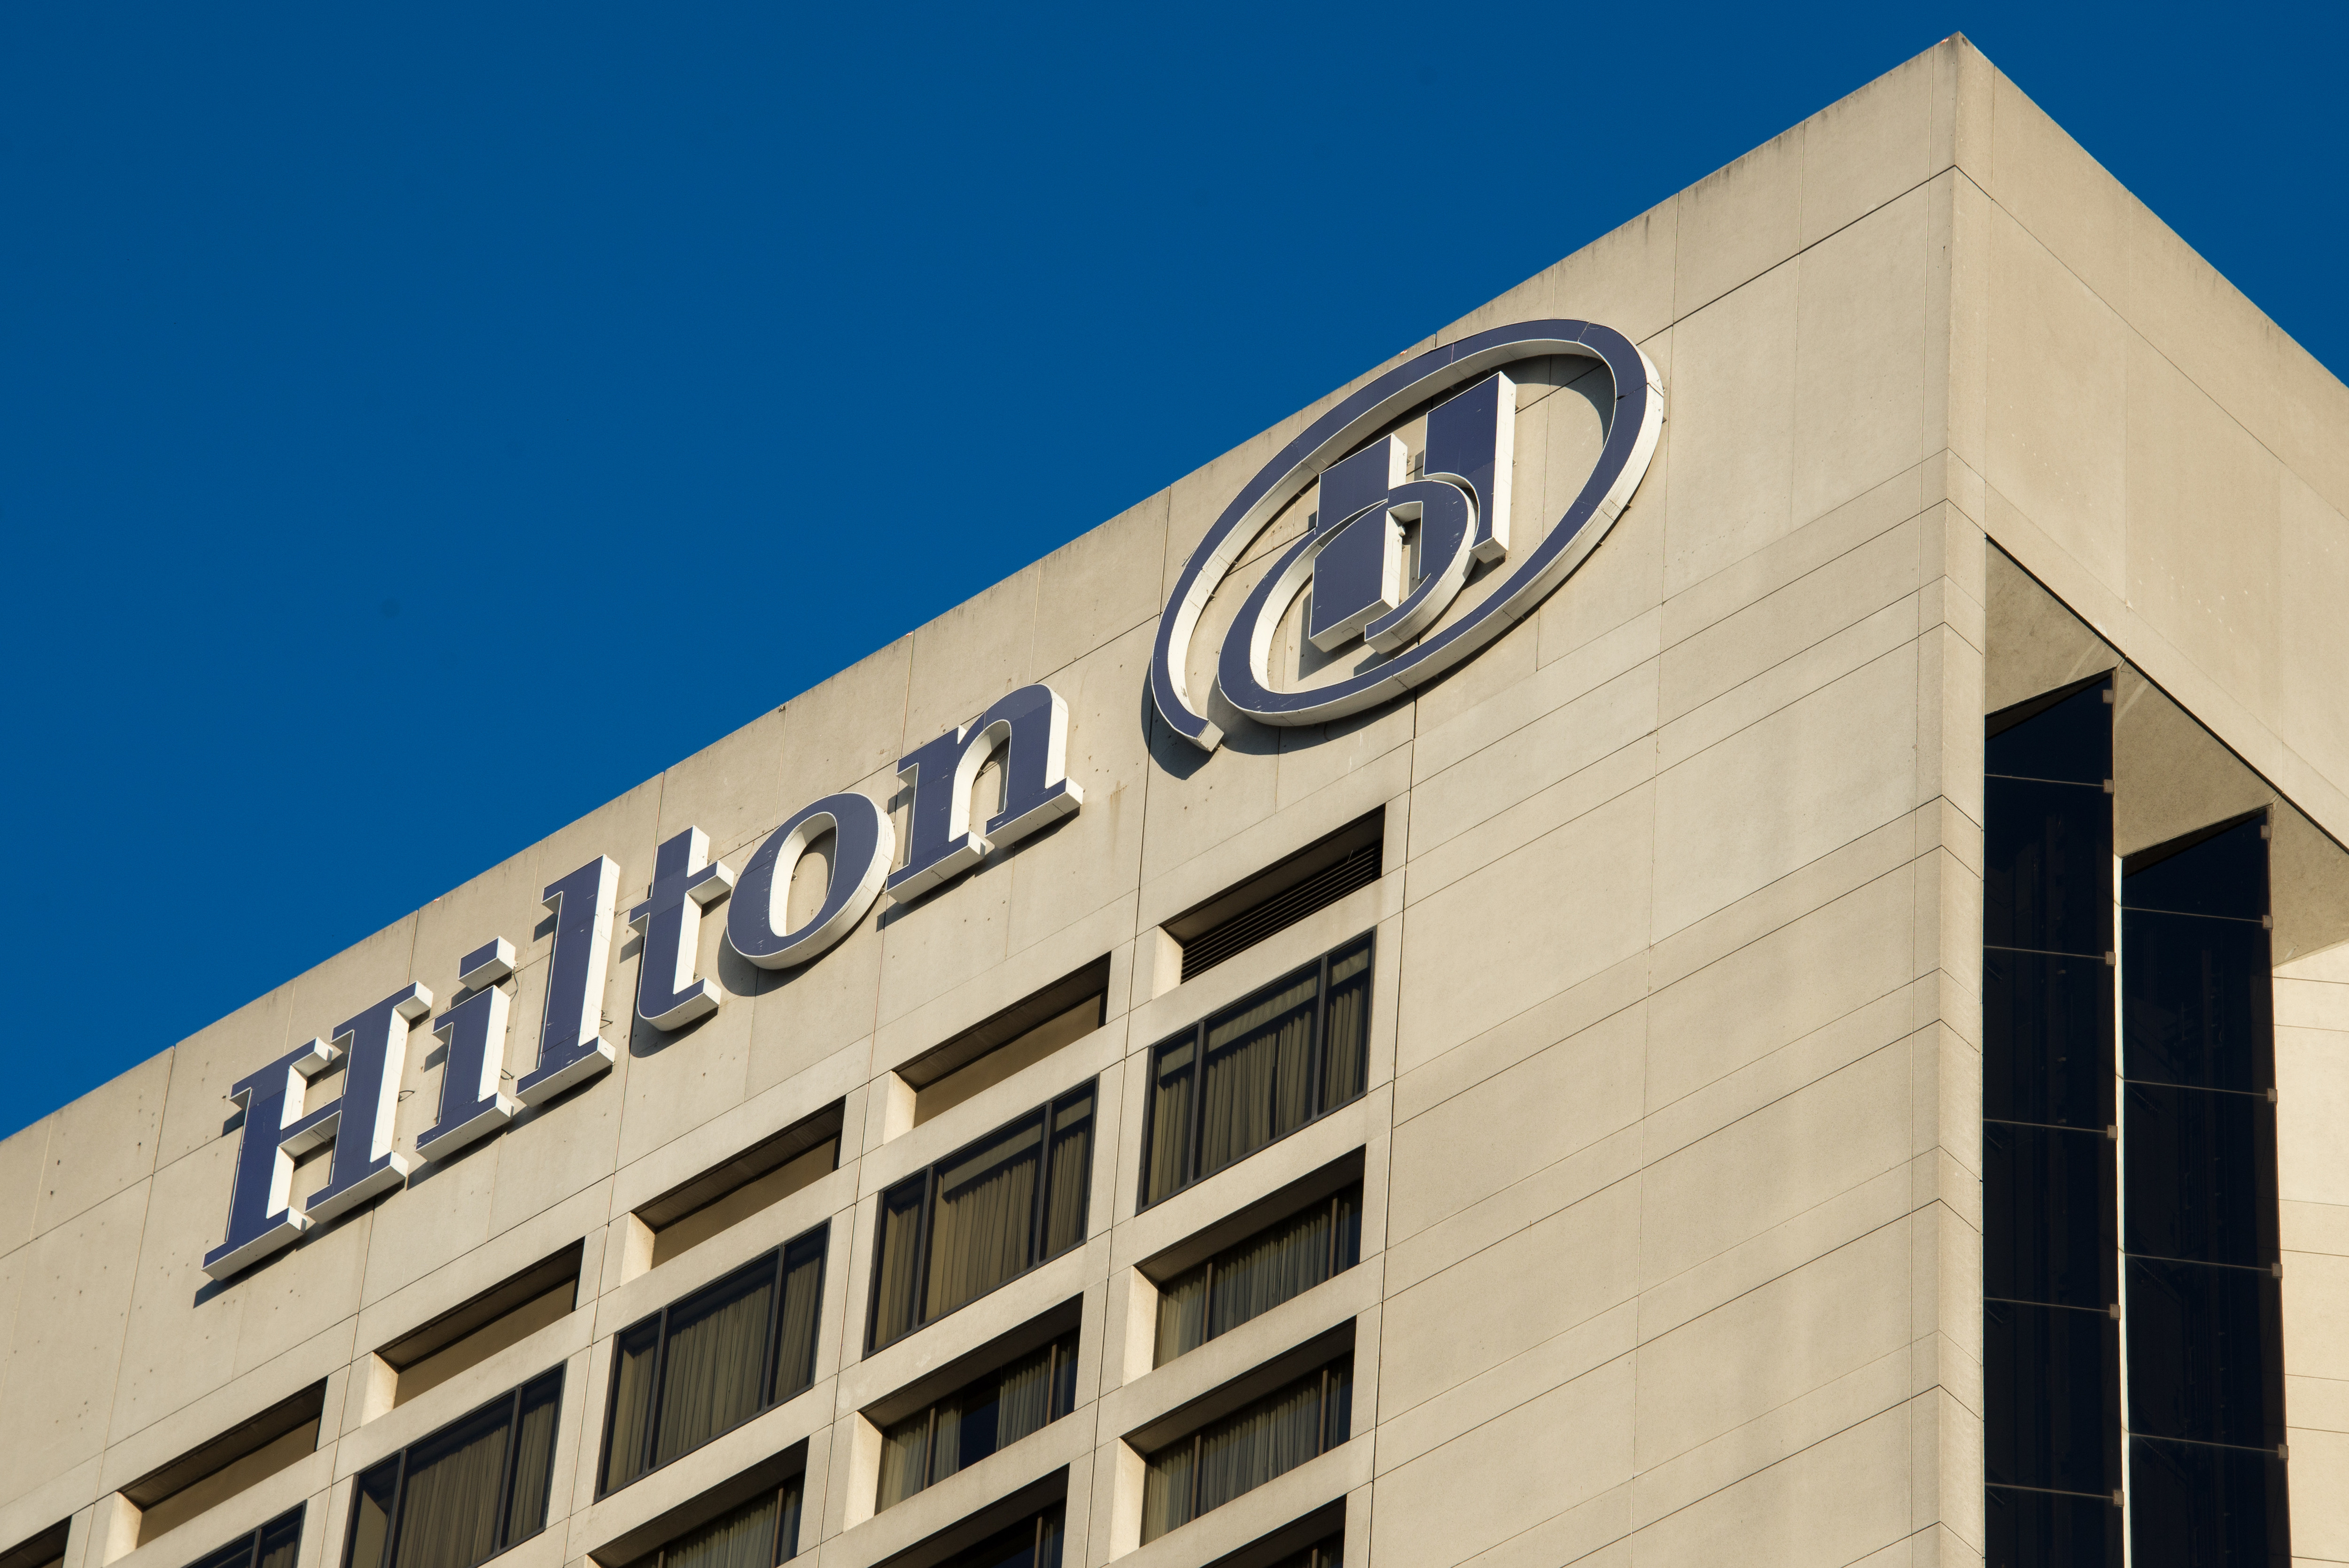 Hilton Hotel is an international brand of hotels and resorts